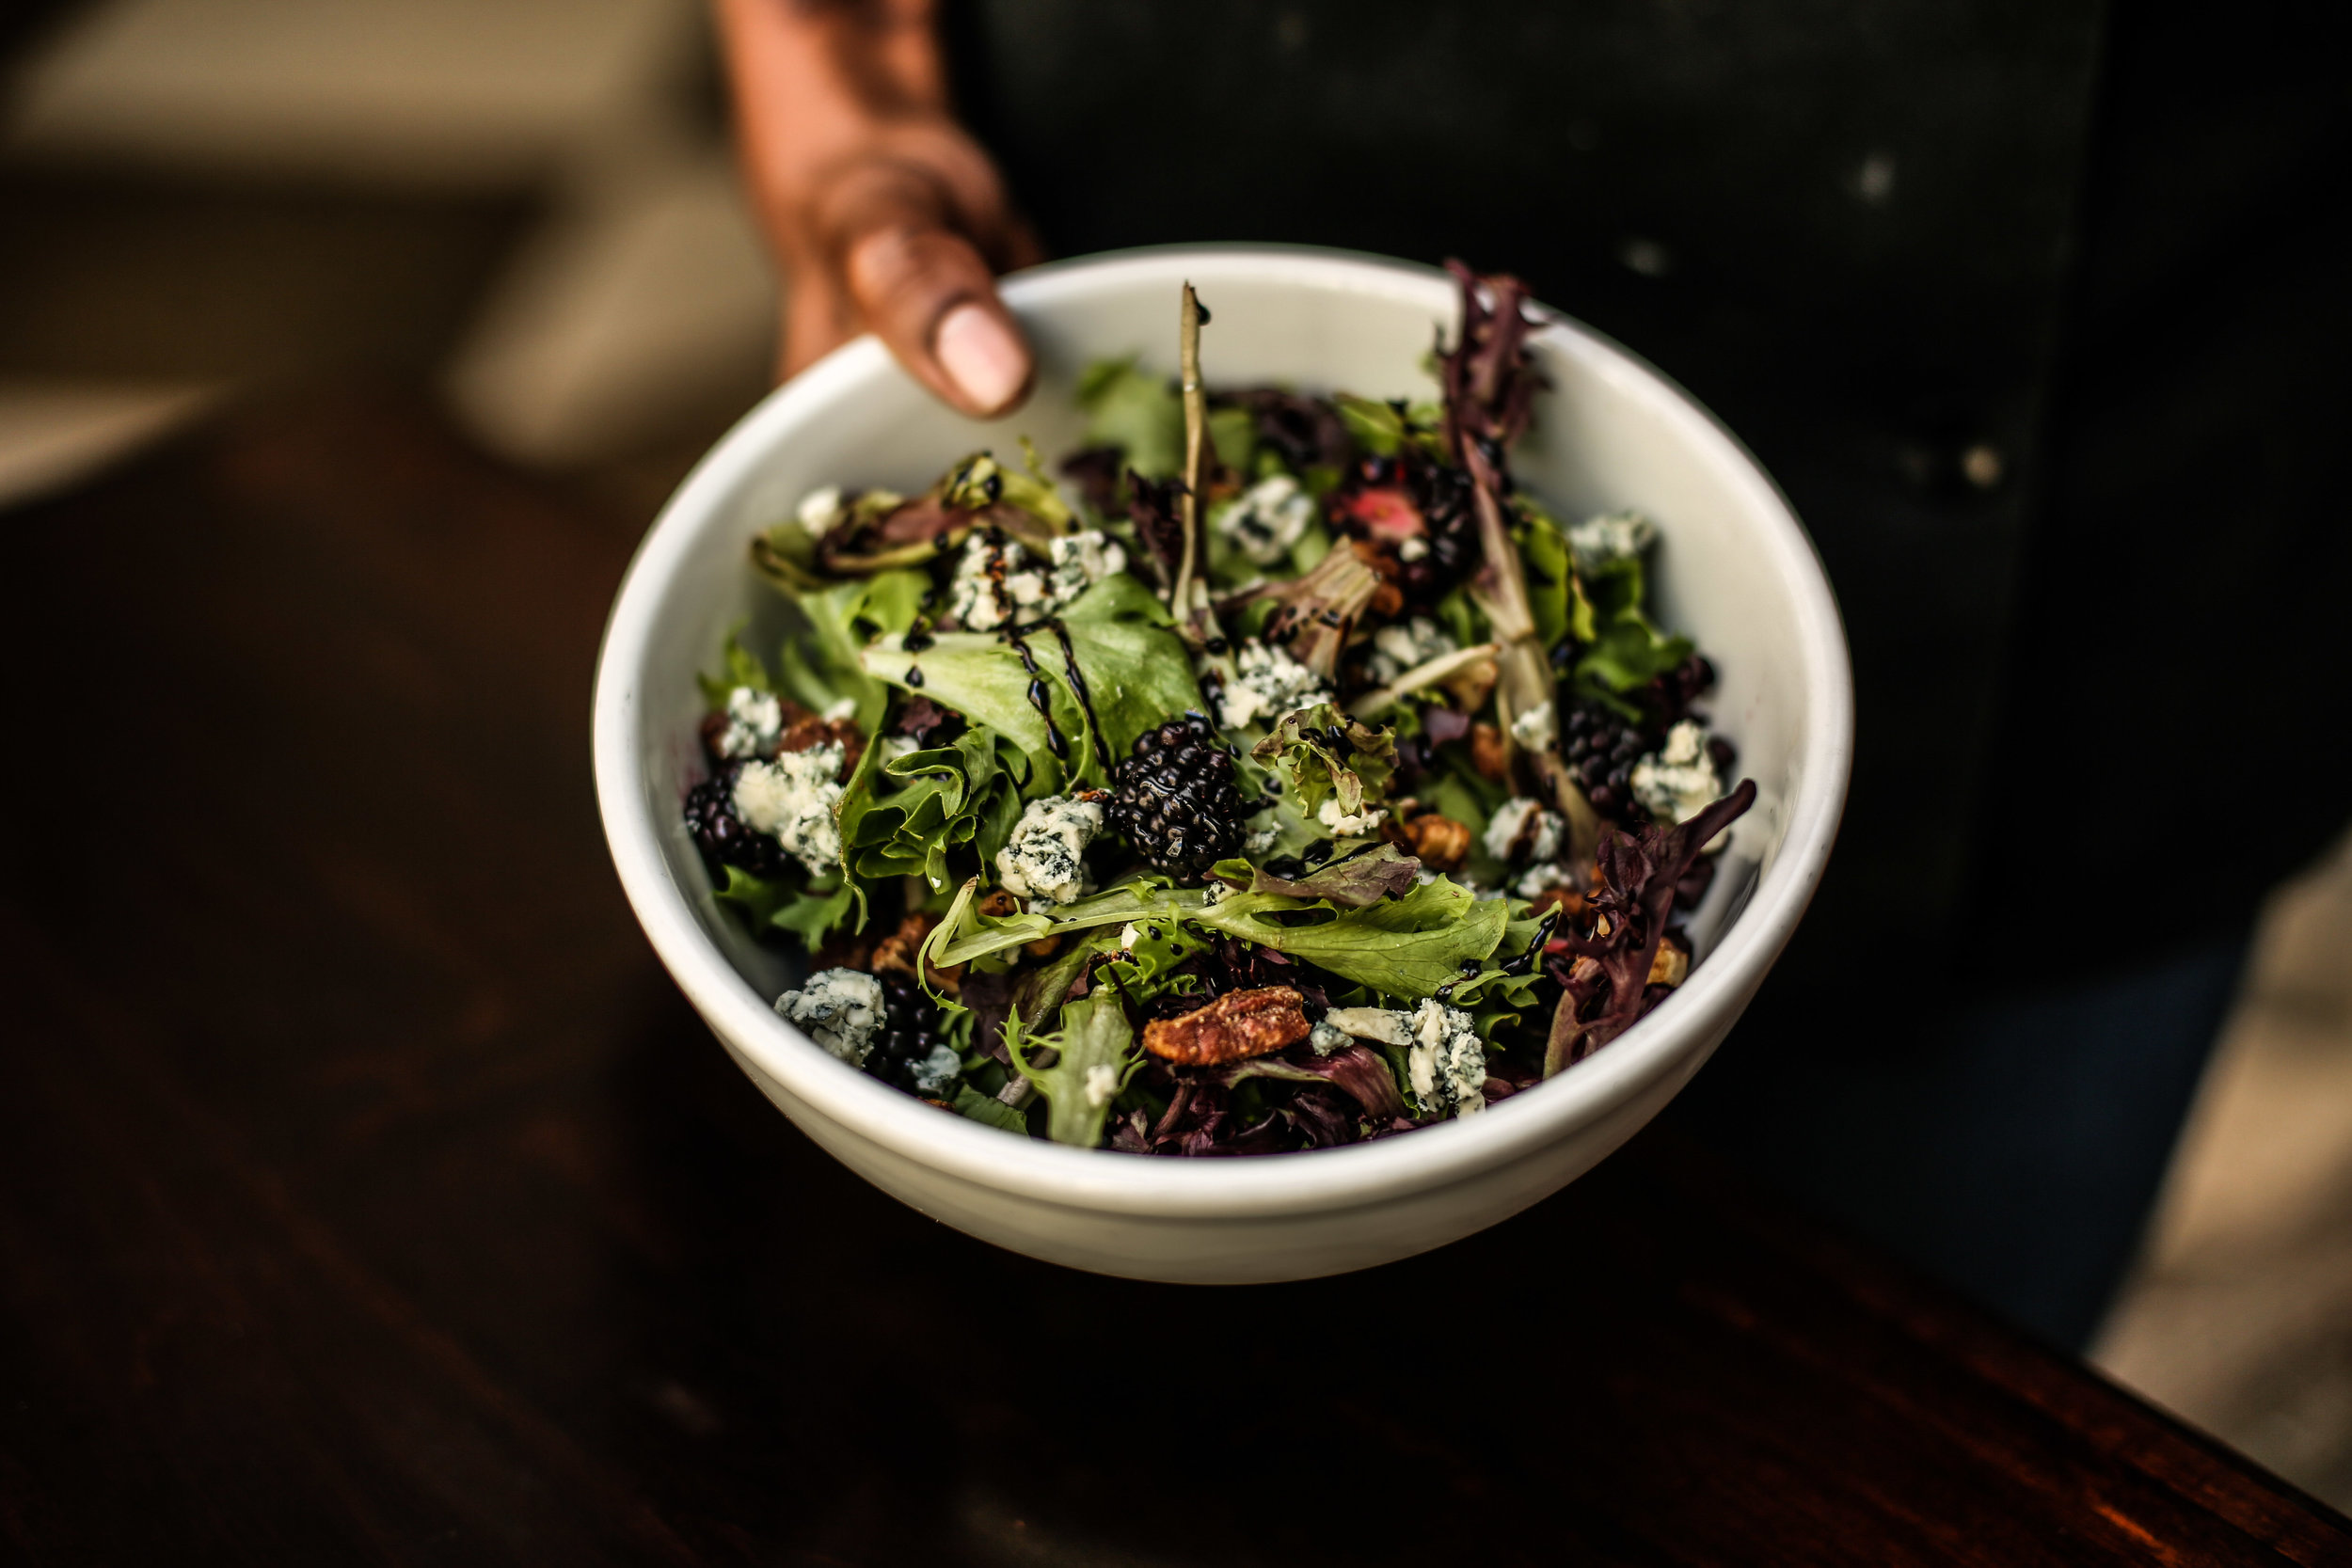 Copy of BLACKBERRY SALAD-1002.jpg